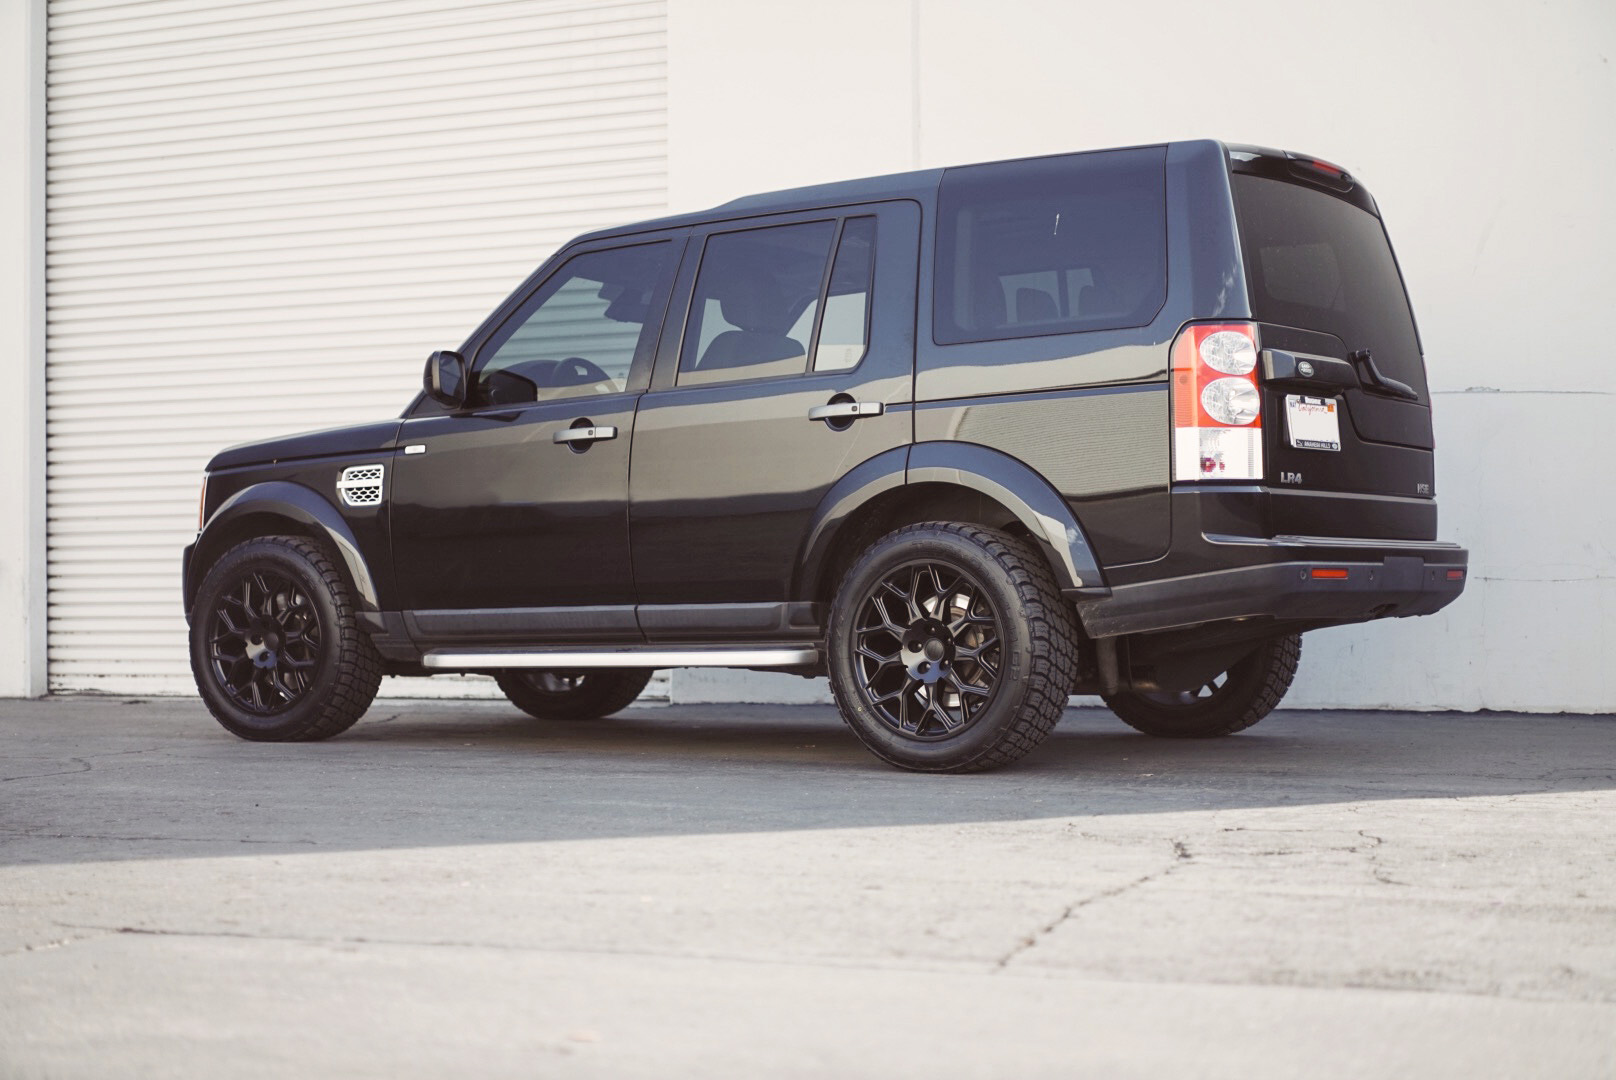 King Range Rover Rims By Redbourne